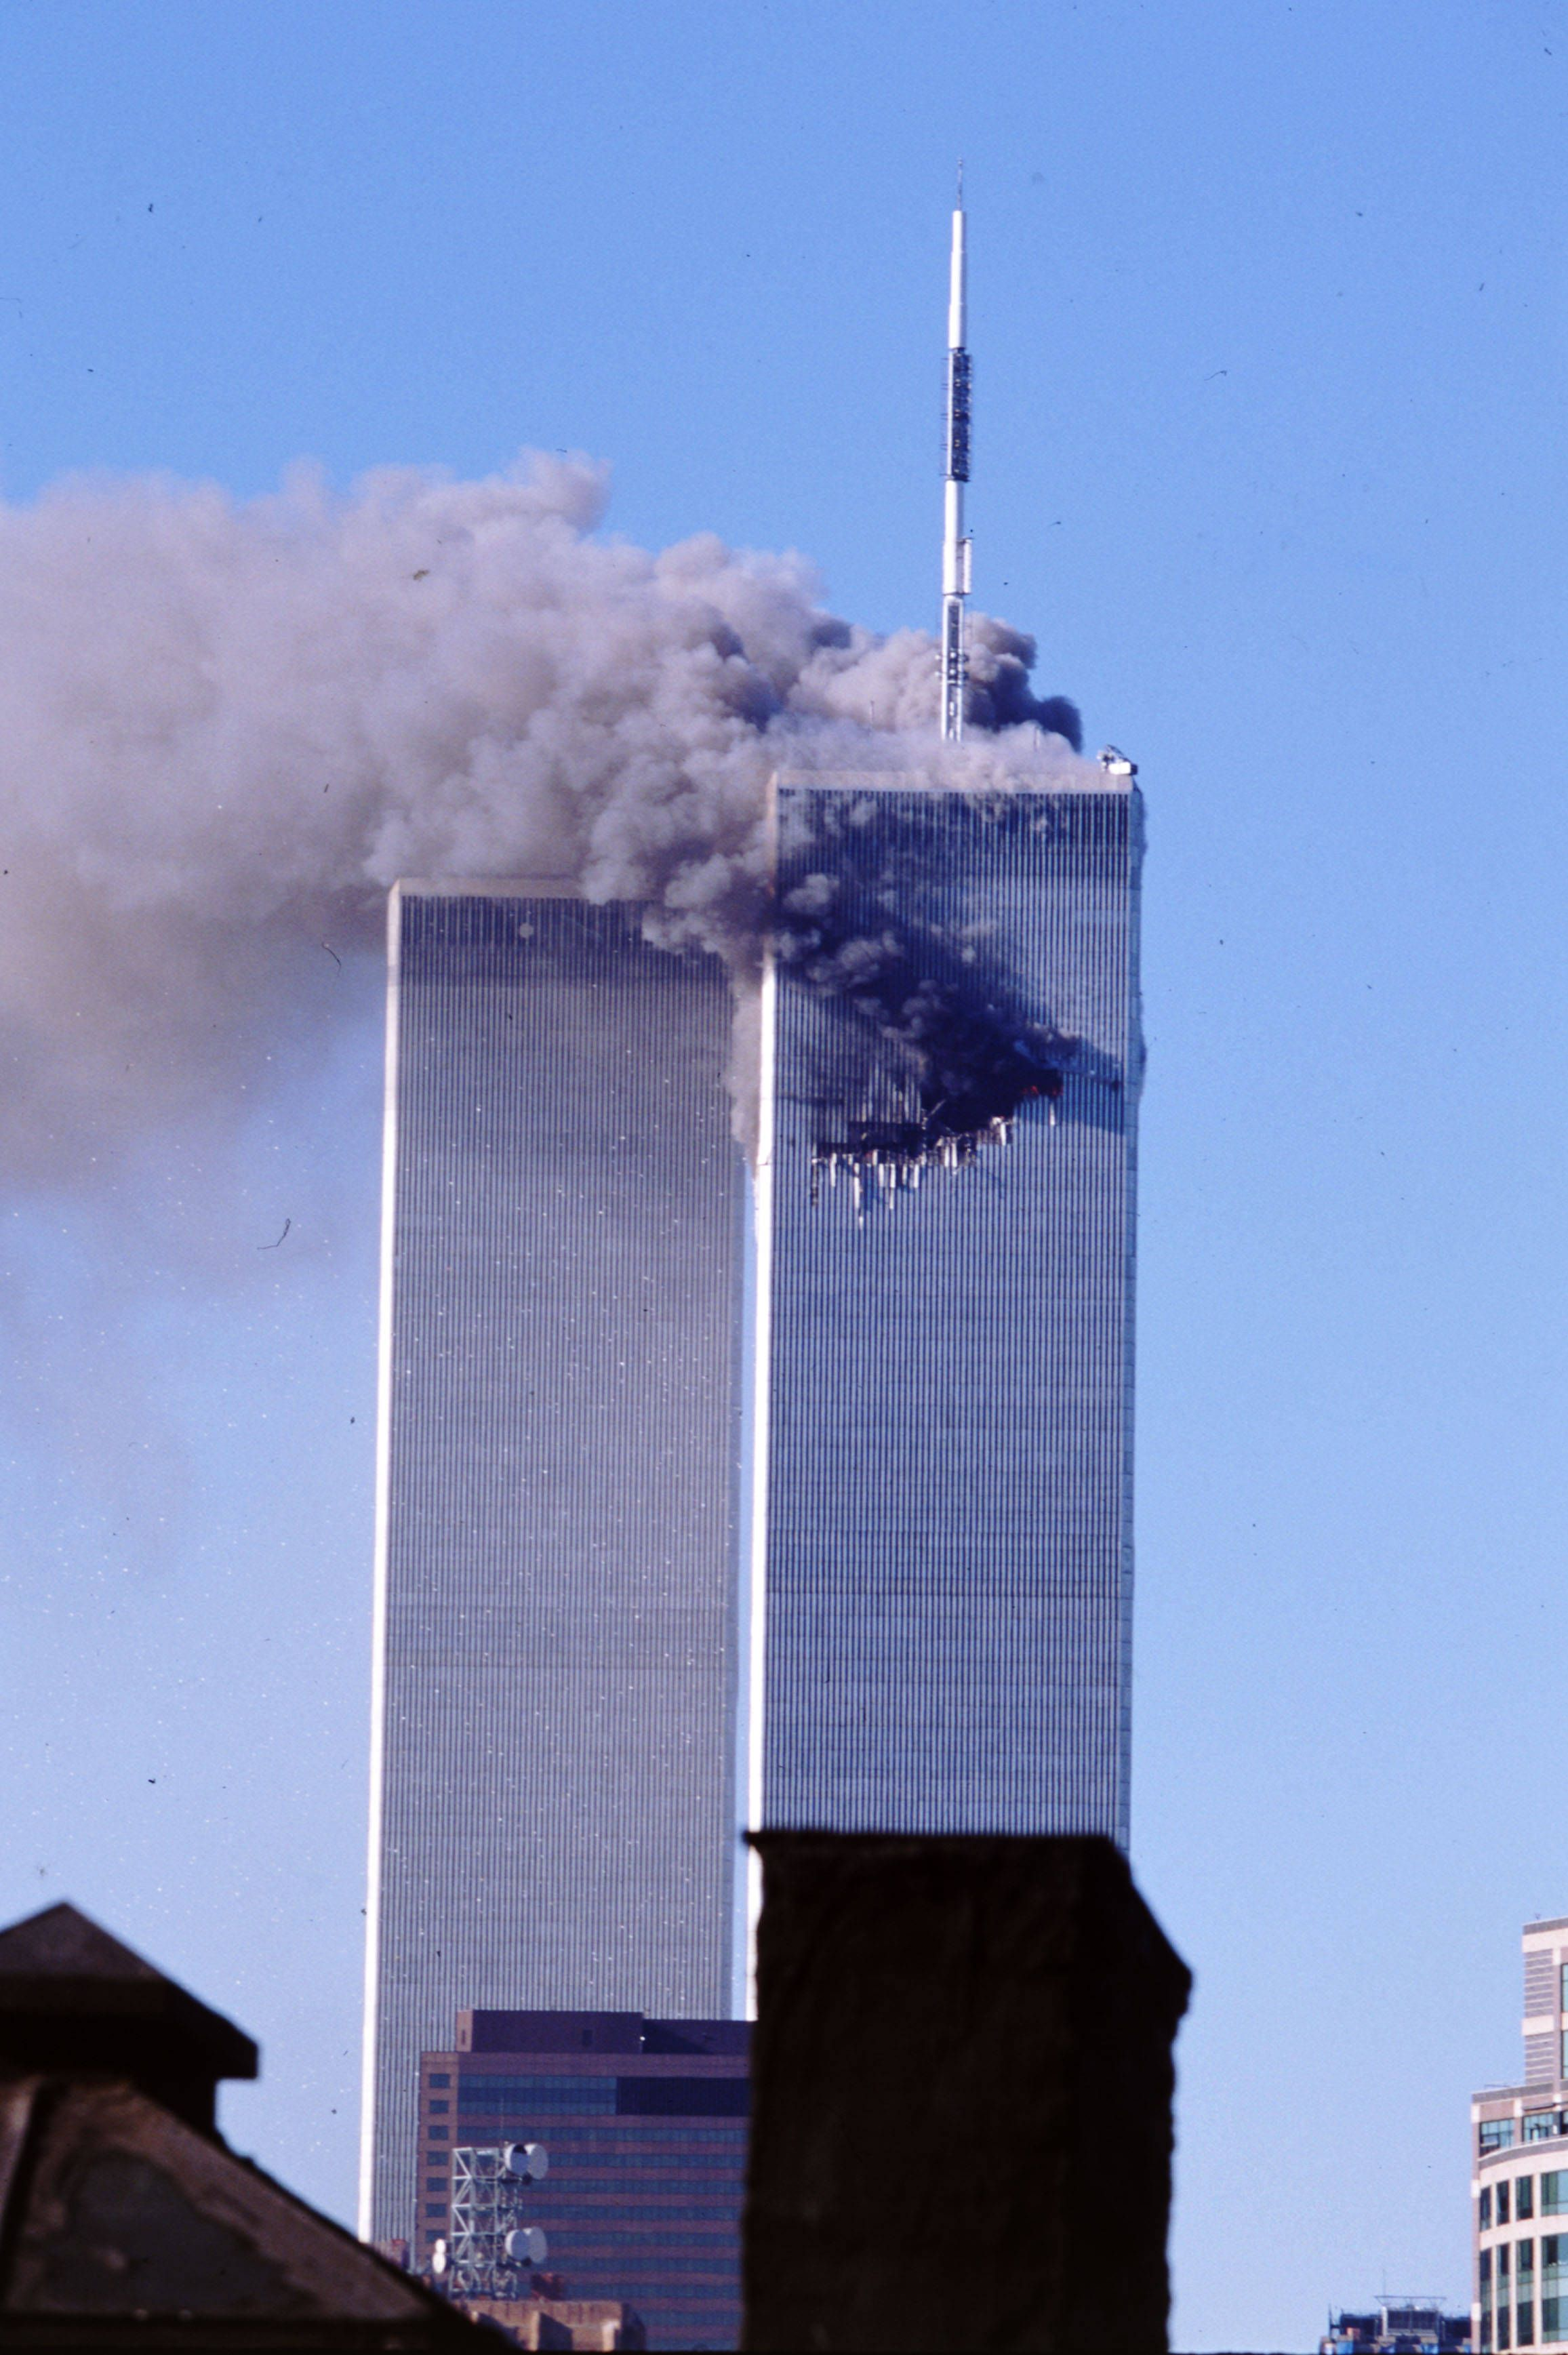 Stairway B Wtc North Tower : World trade center north tower hit and we should rid of